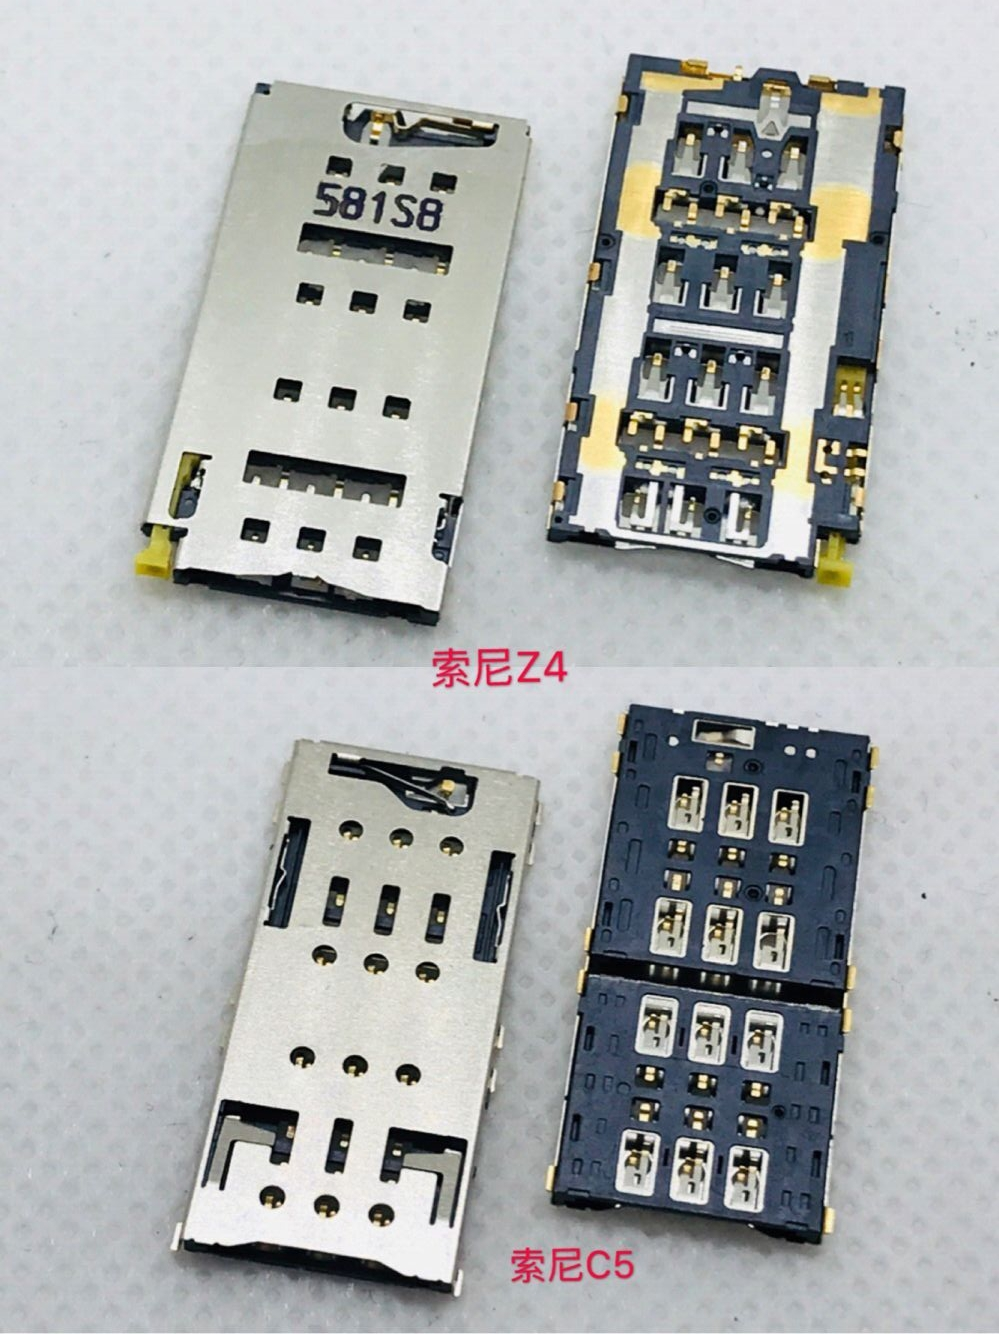 Z4 C5 Micro Dual <font><b>SIM</b></font> <font><b>Card</b></font> 2 in 1 Socket <font><b>Connector</b></font> <font><b>6</b></font> pin Slot Tray Holder Reader Smartphone Motherboard PCB Board Adapter Patch image